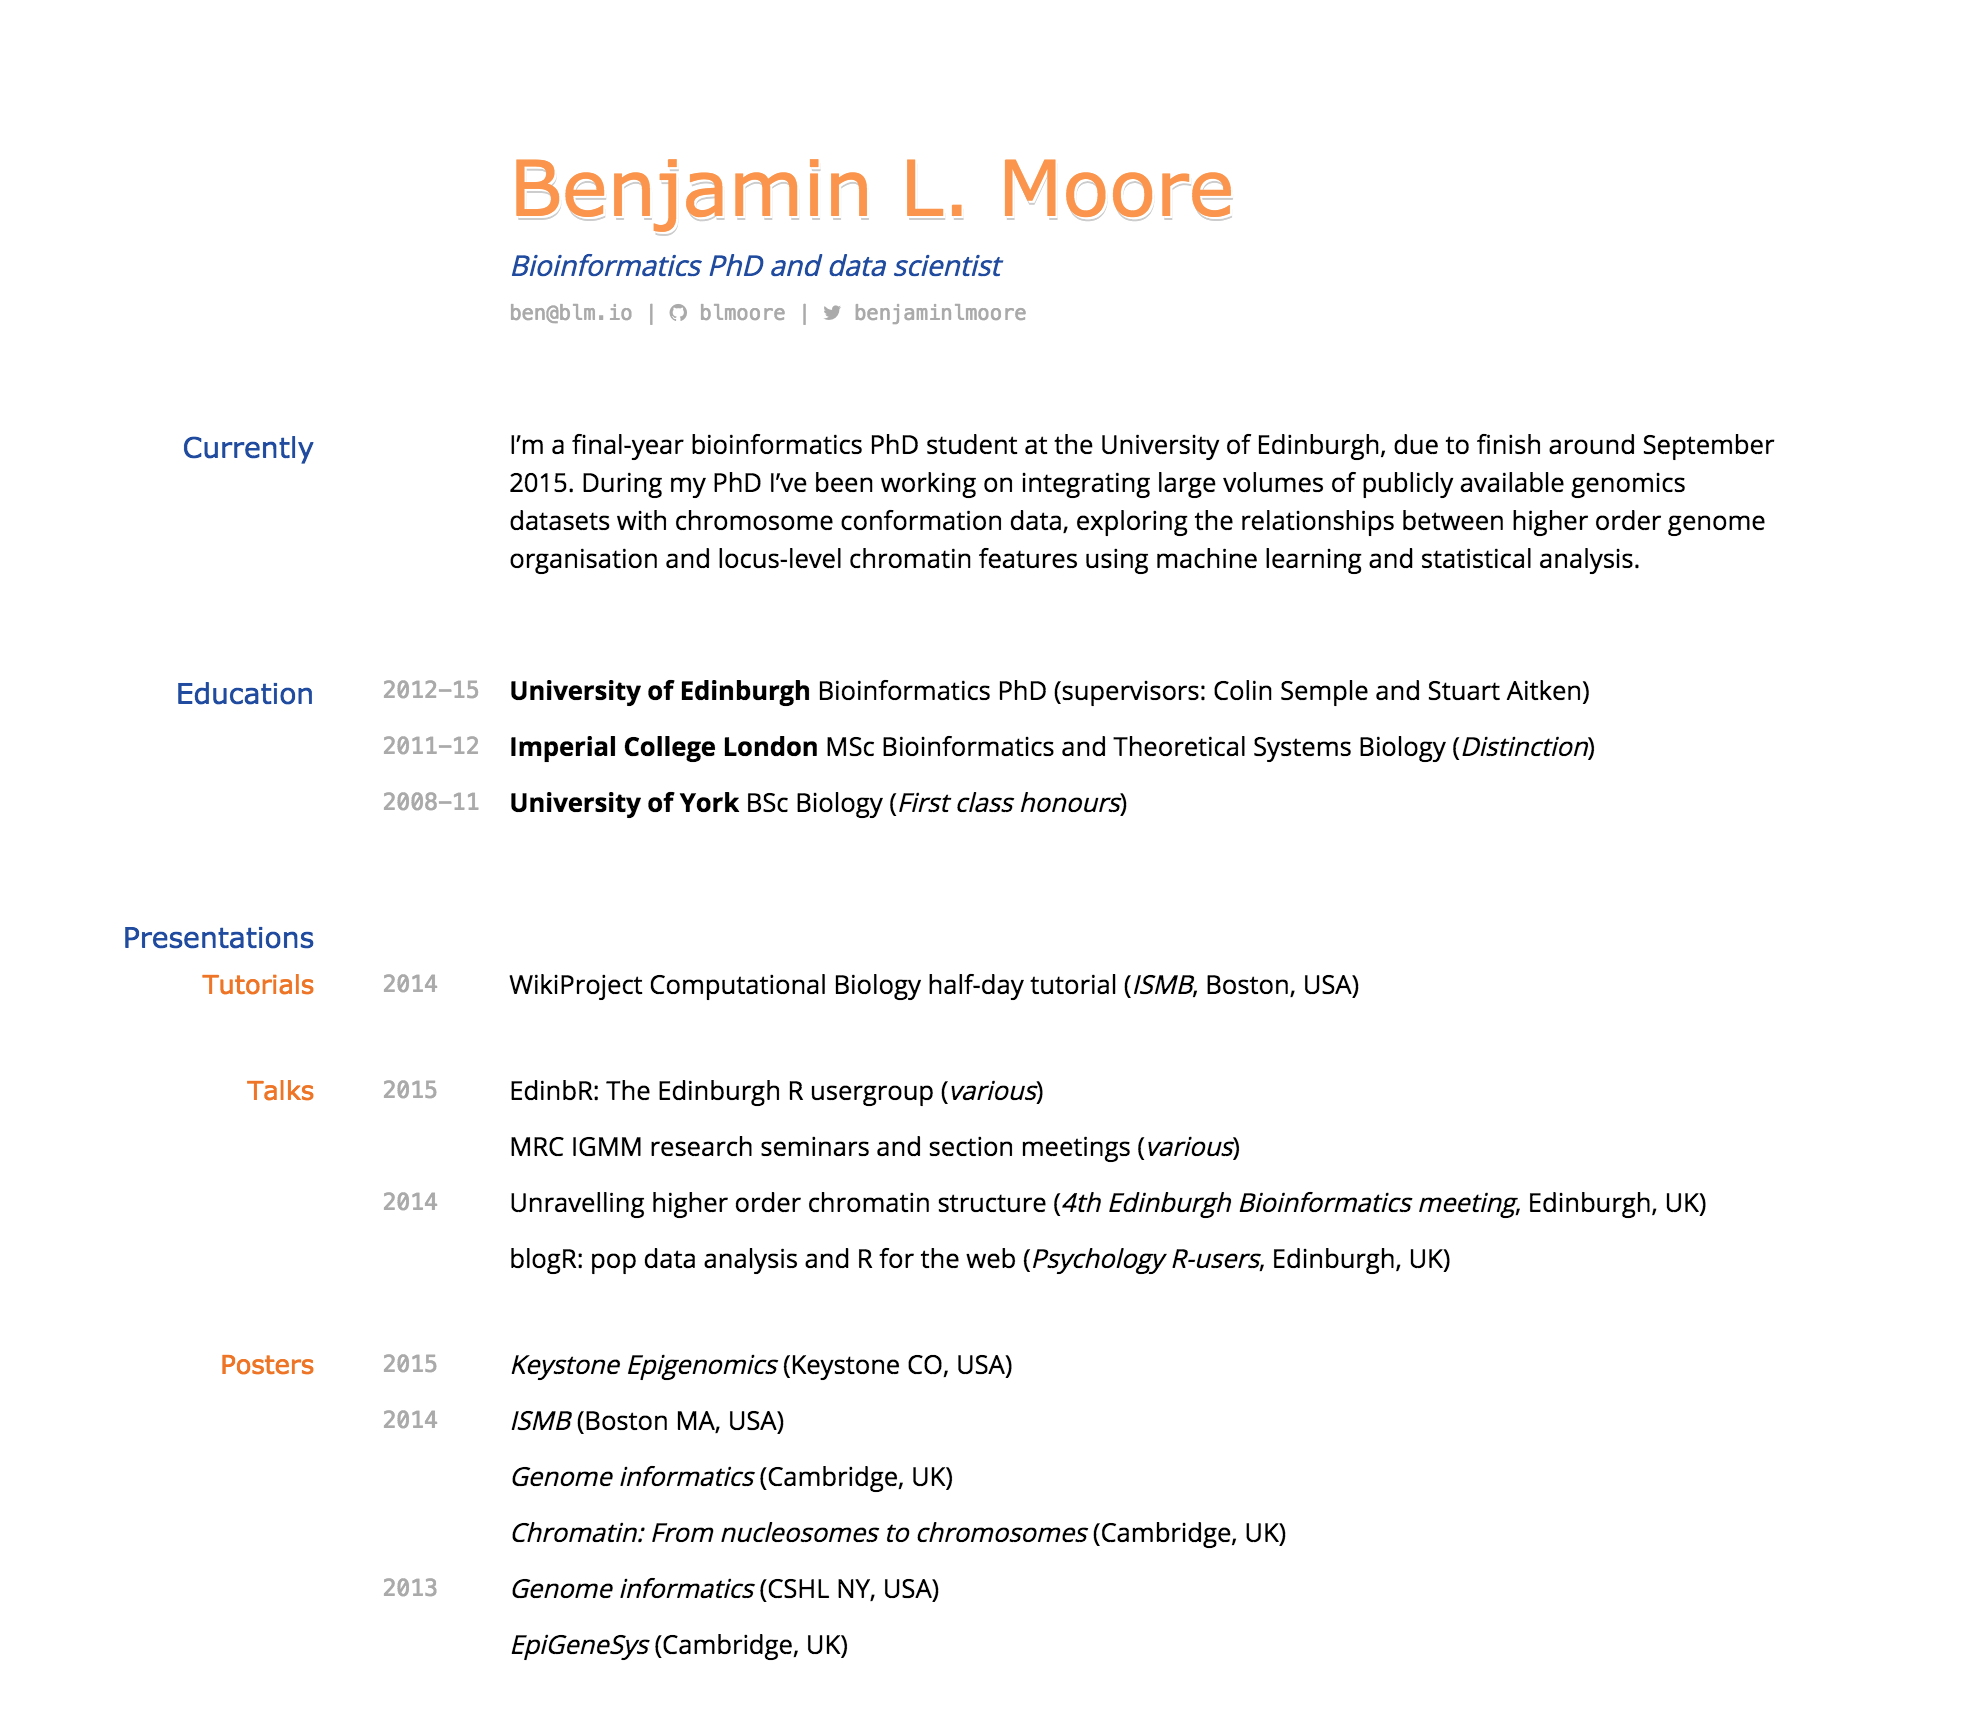 building an academic cv in markdown  u00b7 blm io